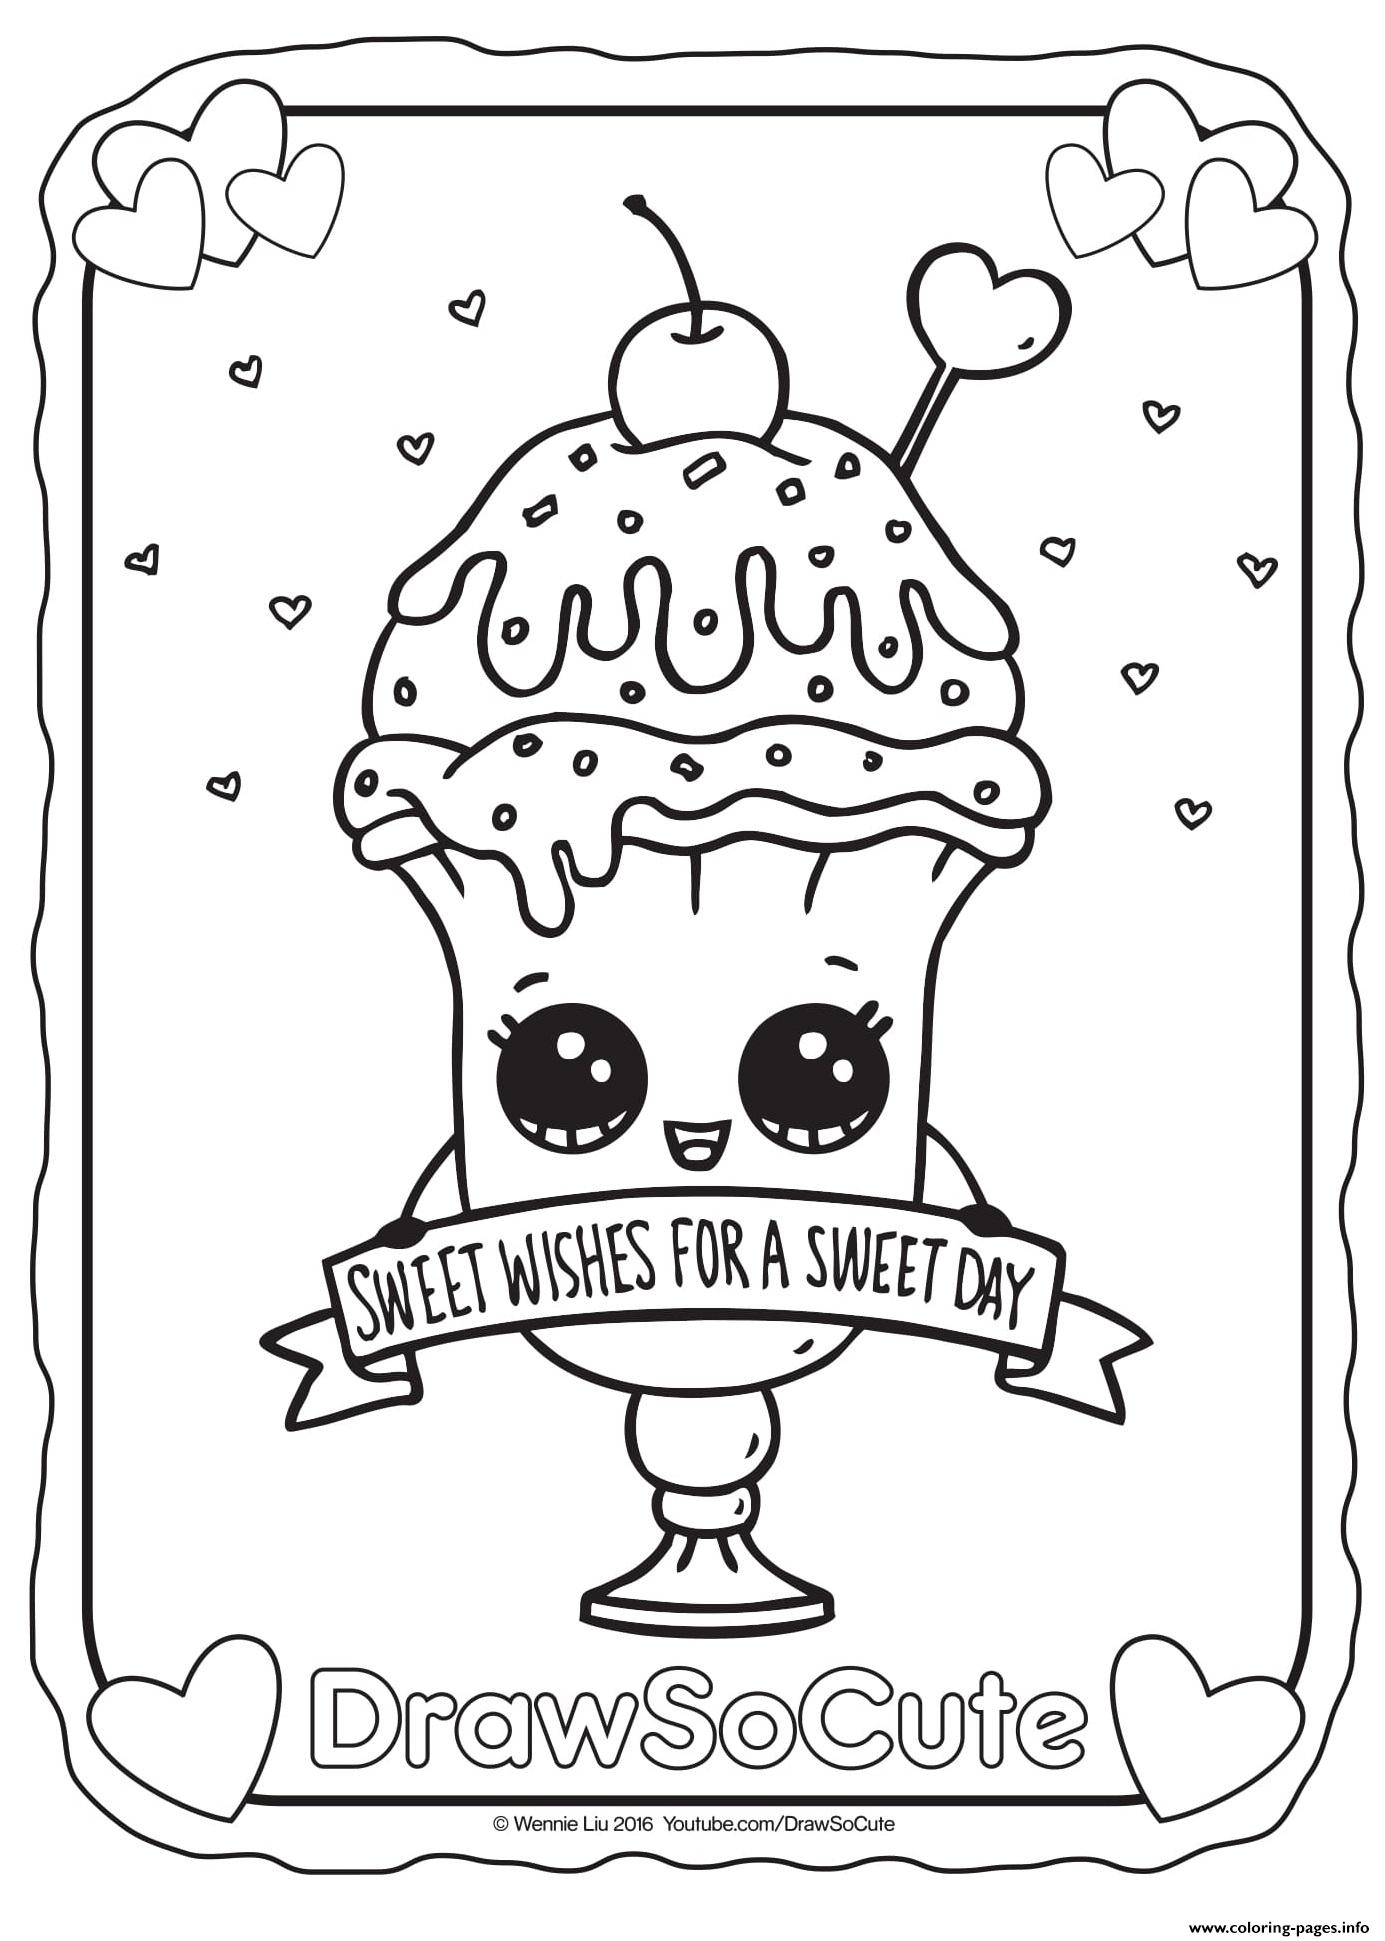 cute coloring pages to print Valentine Ice Cream Sundae Draw So Cute Coloring Pages Printable cute coloring pages to print